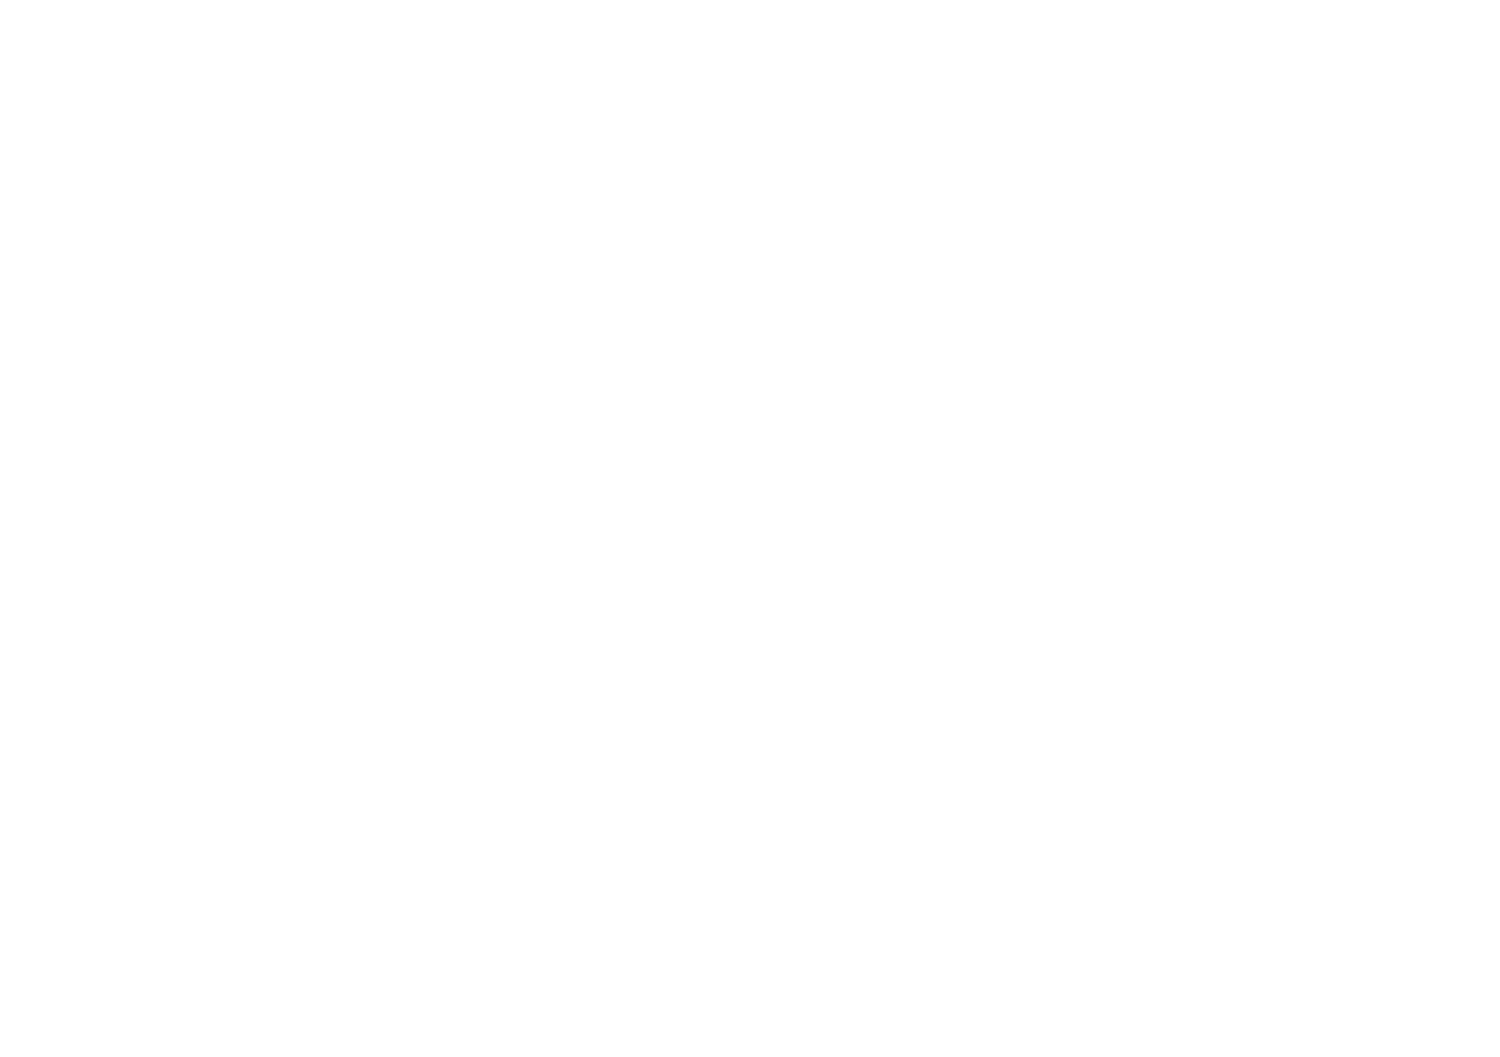 Pinnacle Running